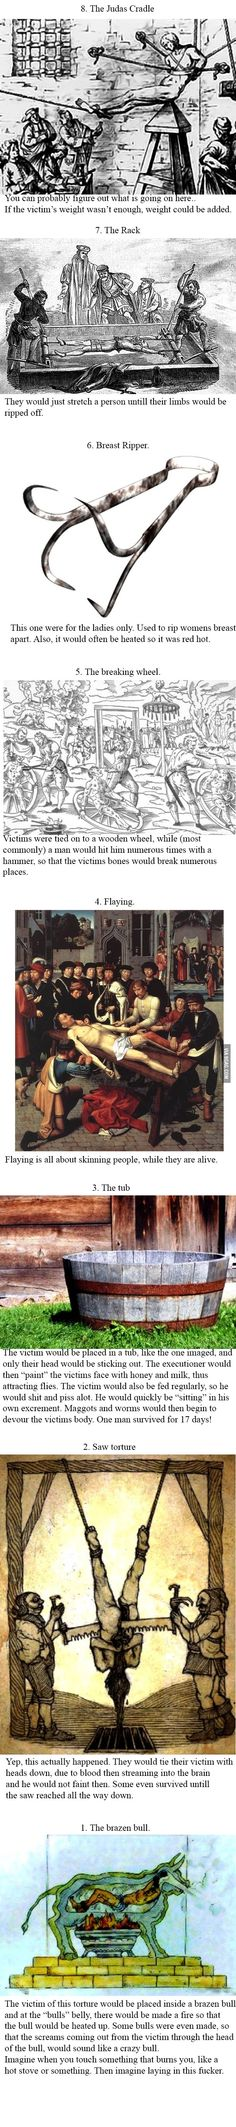 The 8 worst torture techniques of the middle ages.